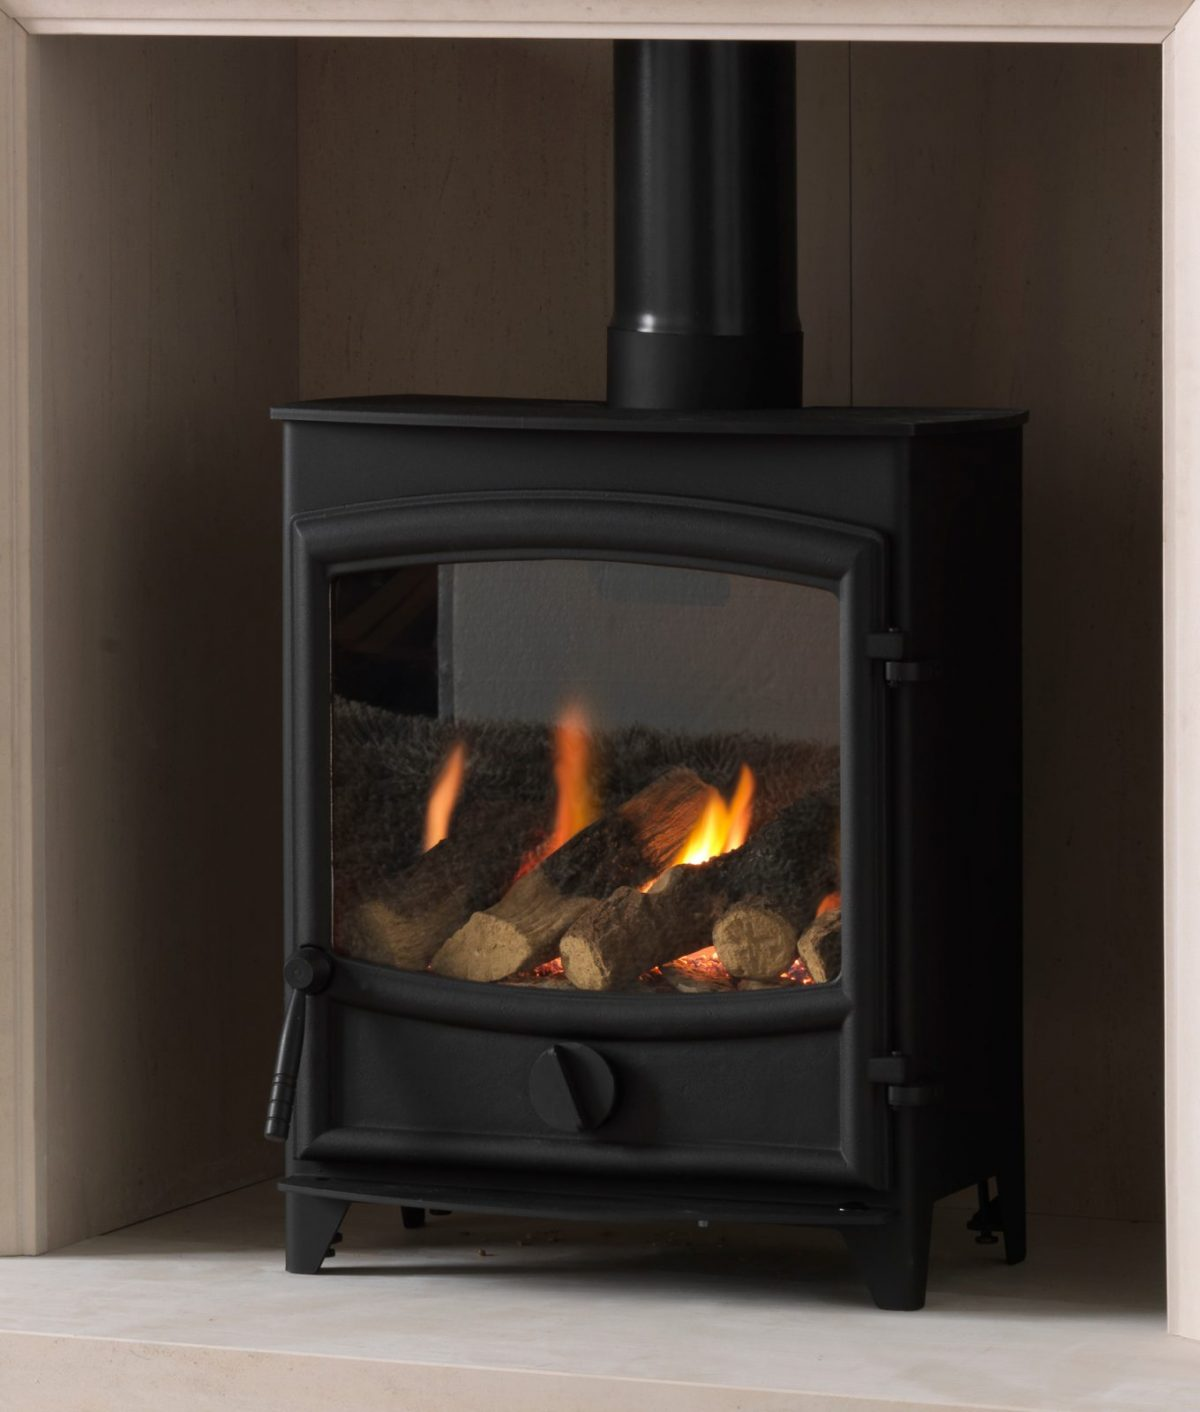 Fireline Fxw Conventional Flue Natural Gas Stove Simply